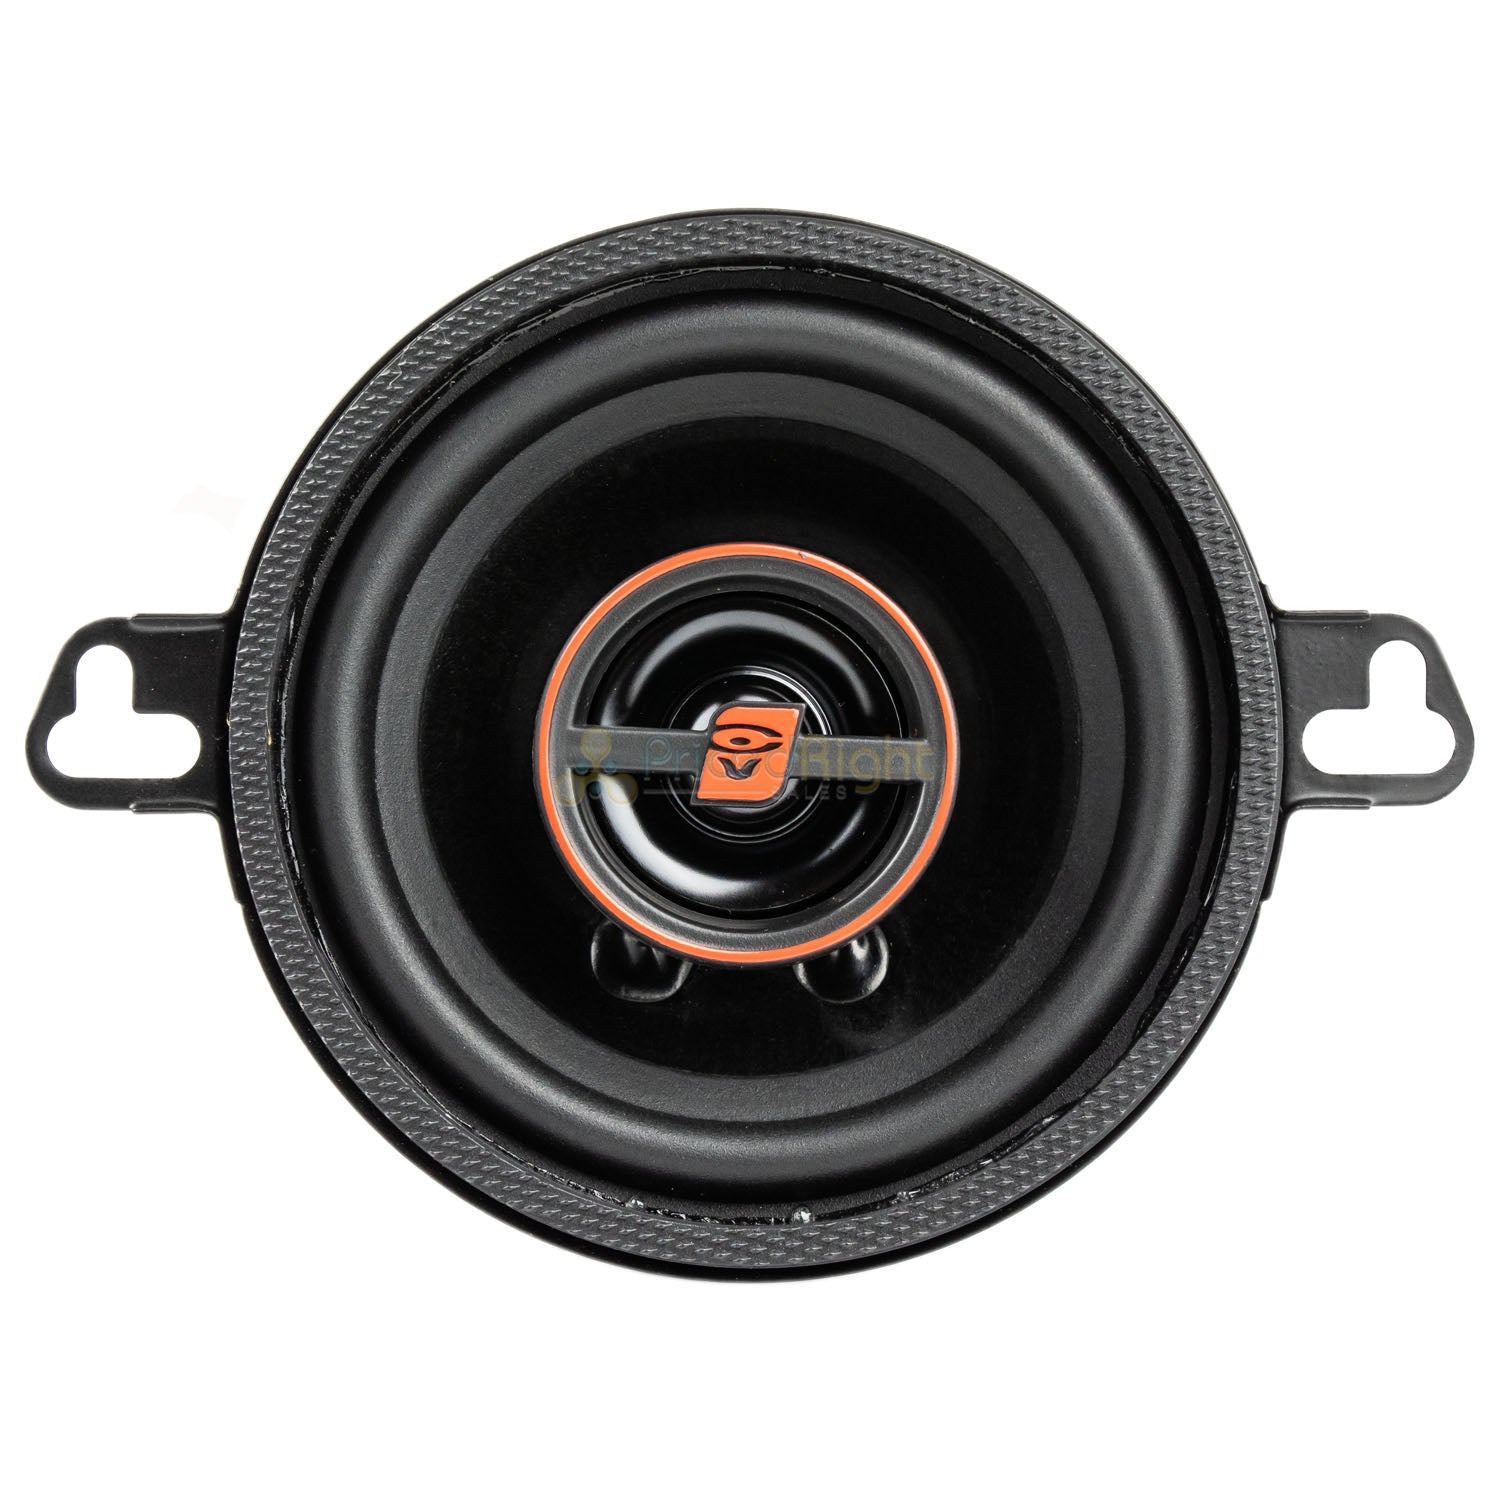 "Cerwin Vega 3.5"" 2 Way Coaxial Speakers Car Stereo Speakers HED Series 30W RMS"